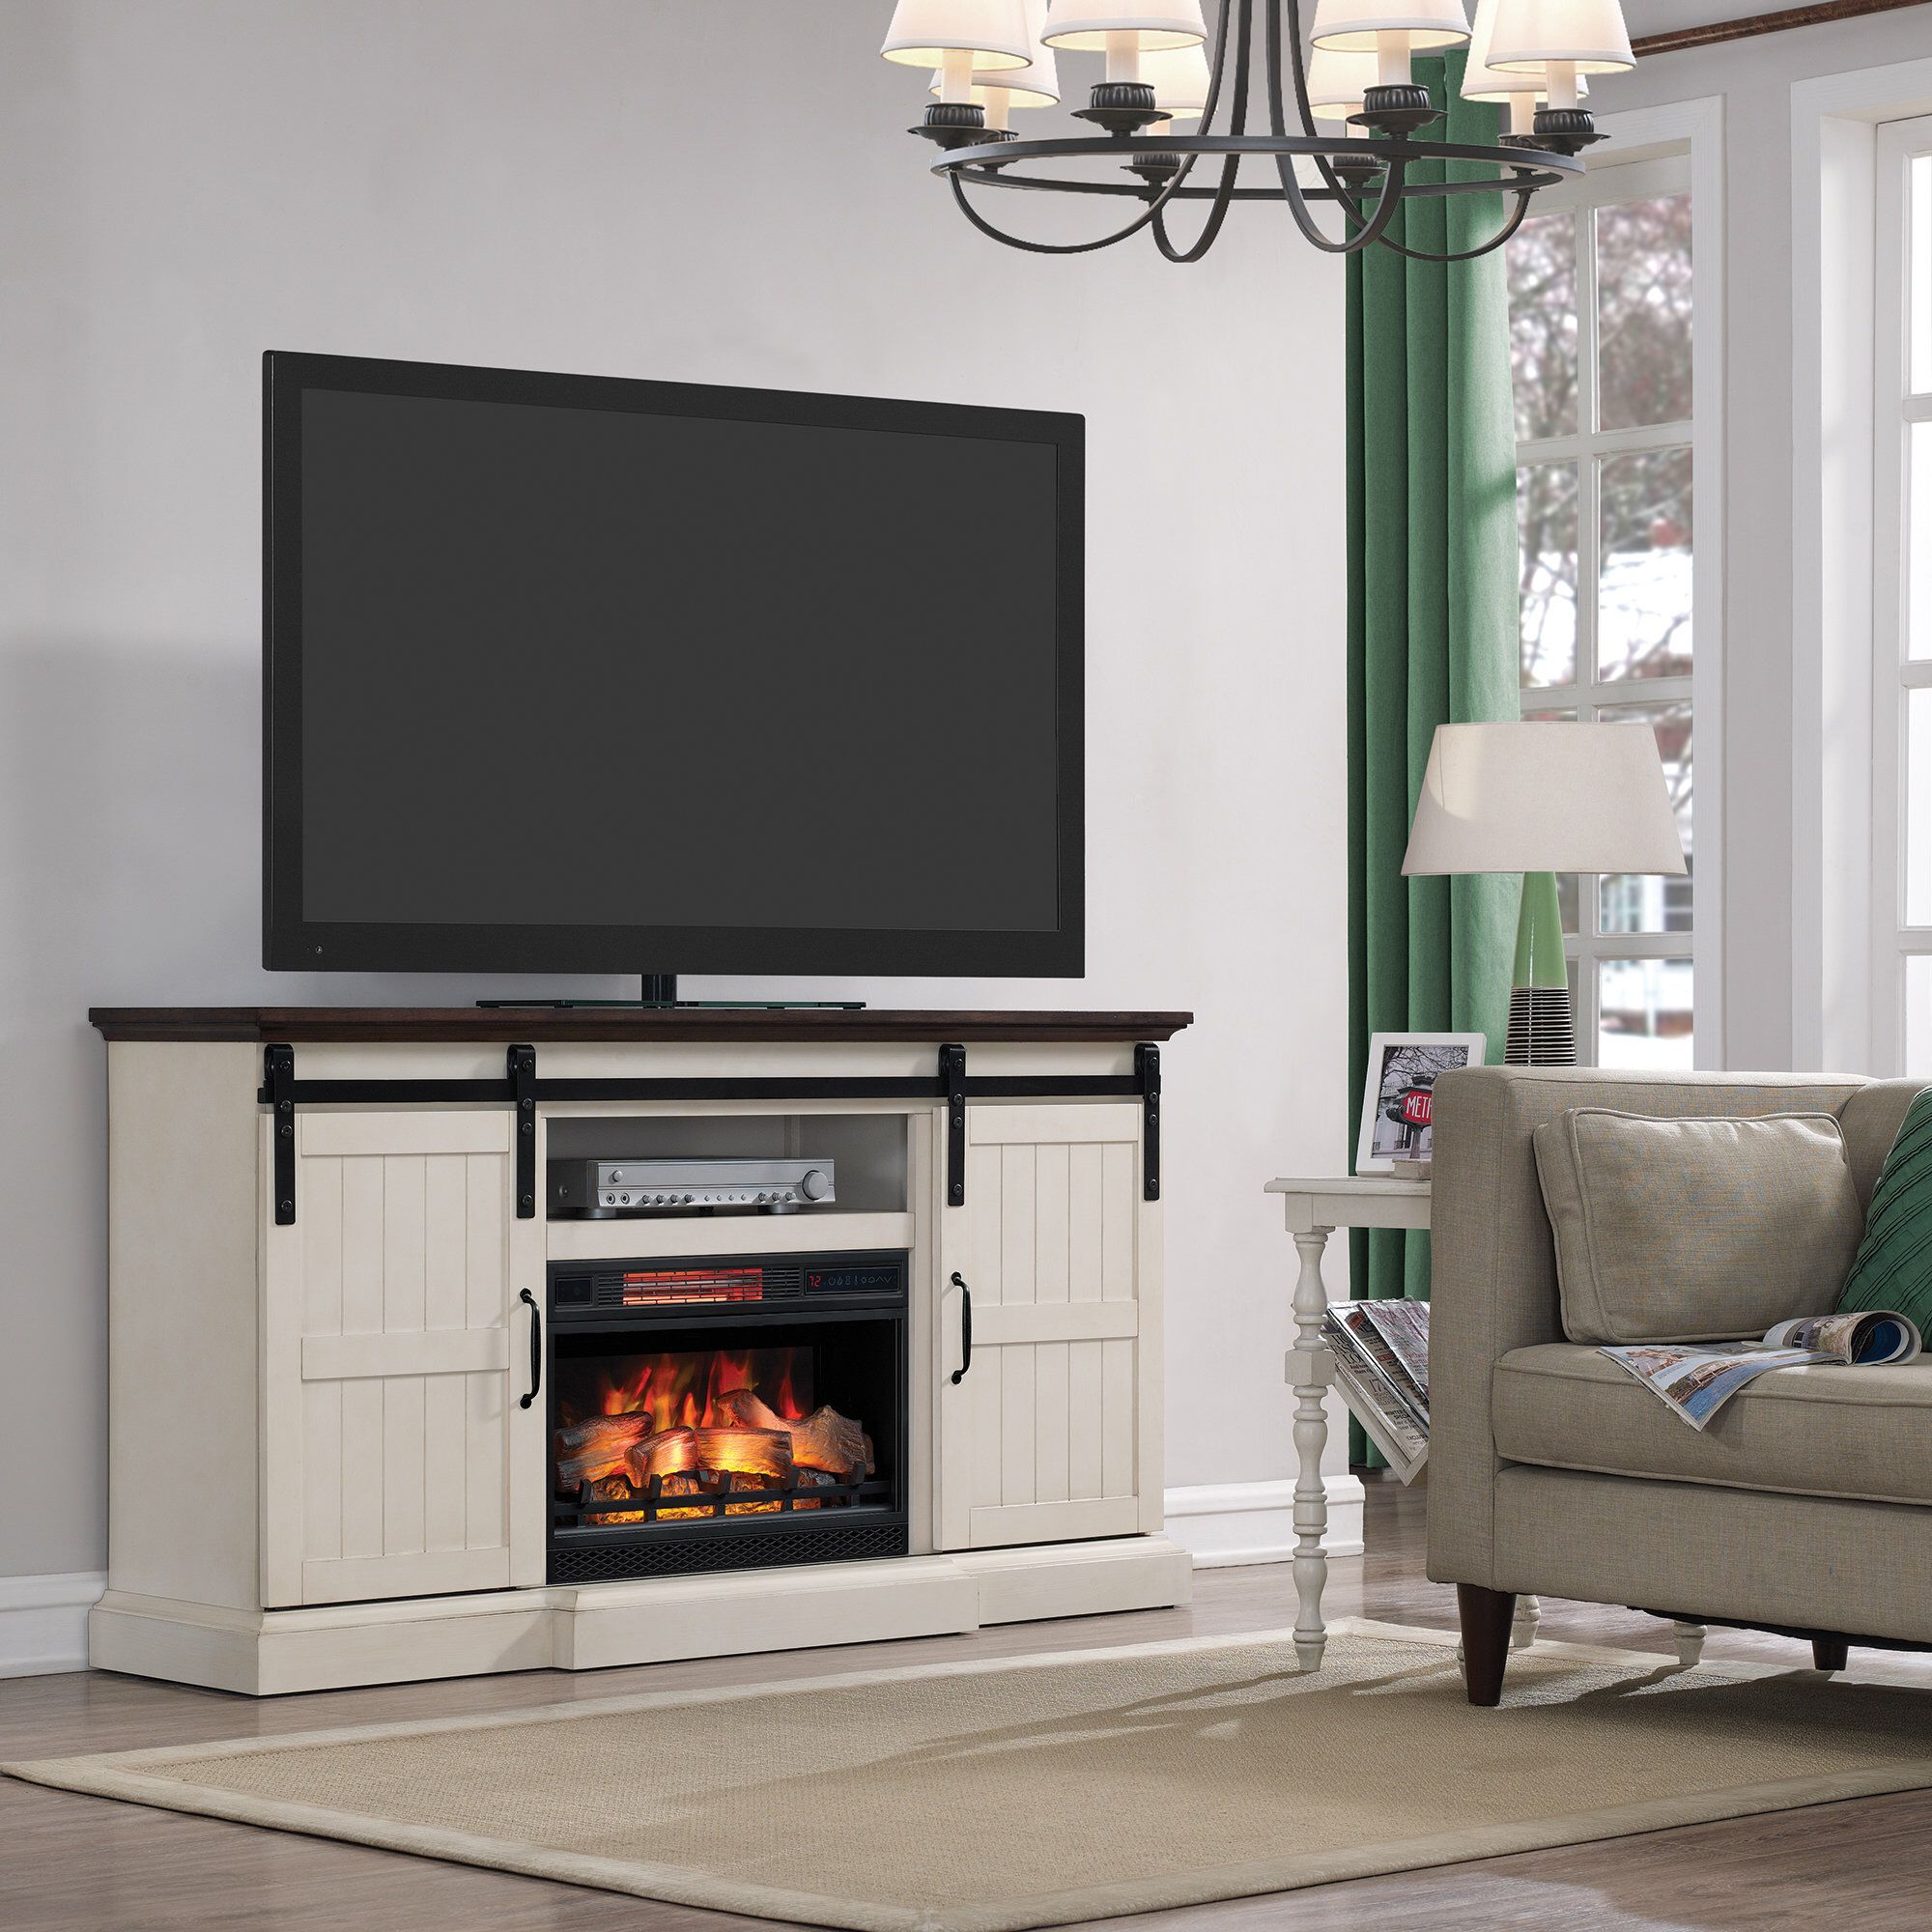 "Rustic Electric Fireplace Tv Stand Inspirational Glendora 66 5"" Tv Stand with Electric Fireplace"